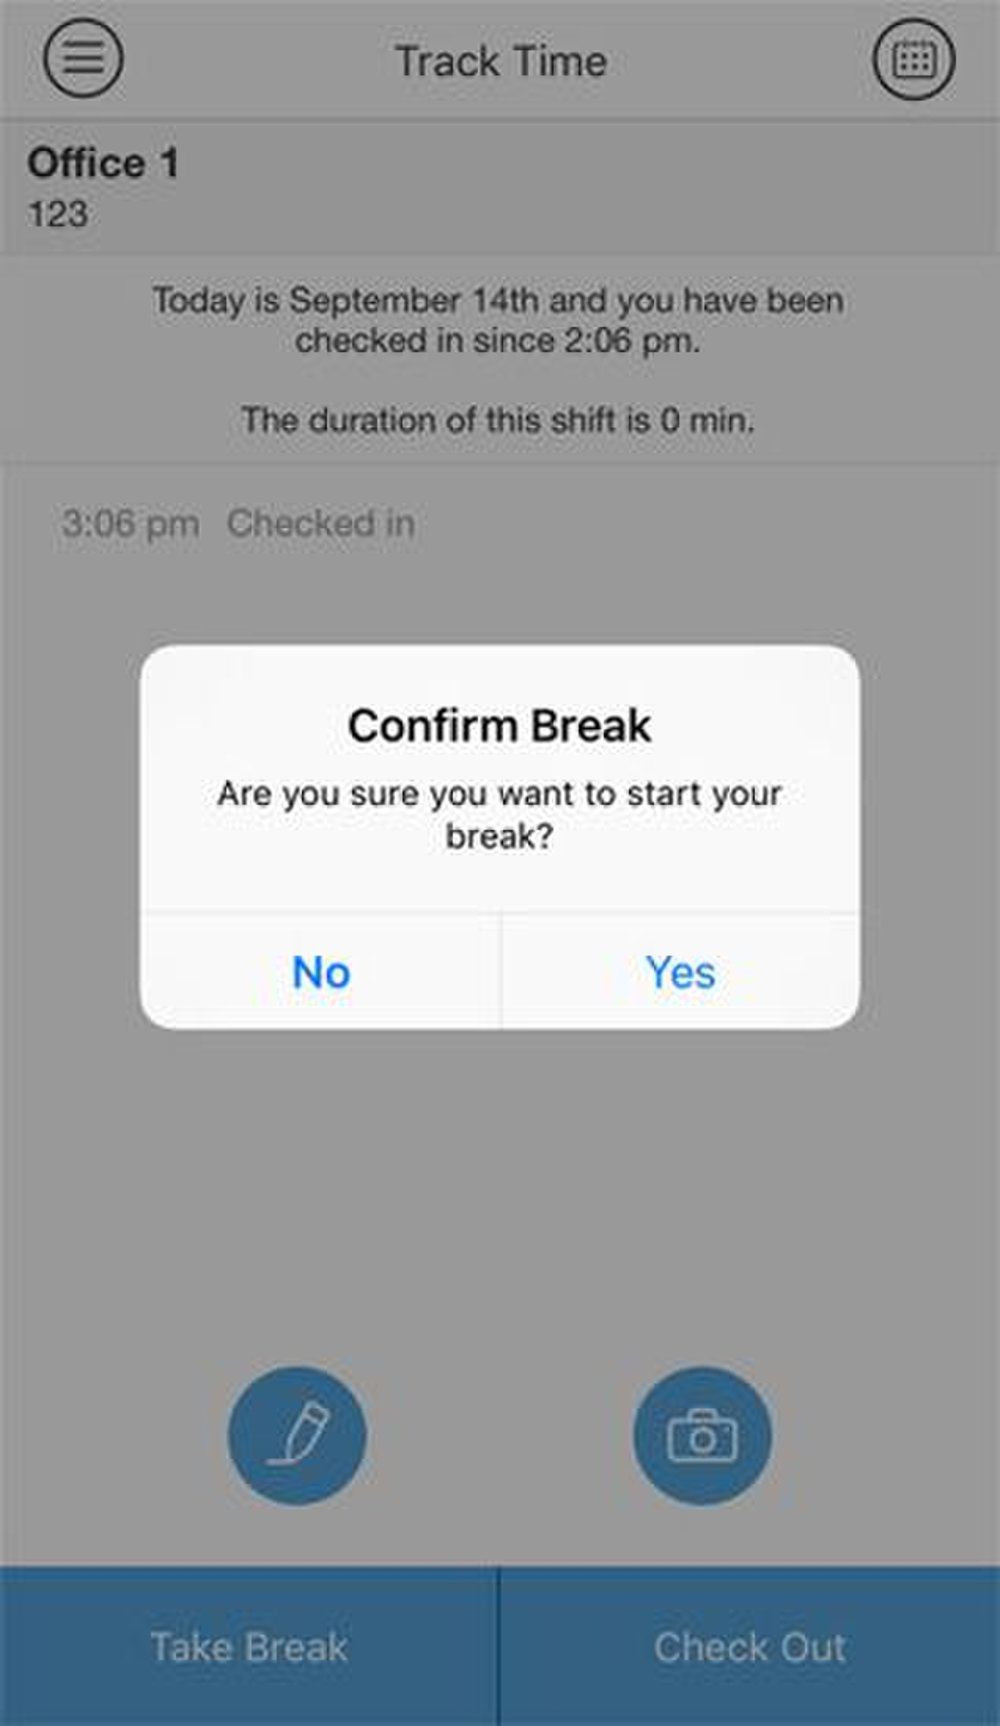 Taking a break is as easy as clicking the Take Break button and confirming the start of a break in the Boomr smartphone app.